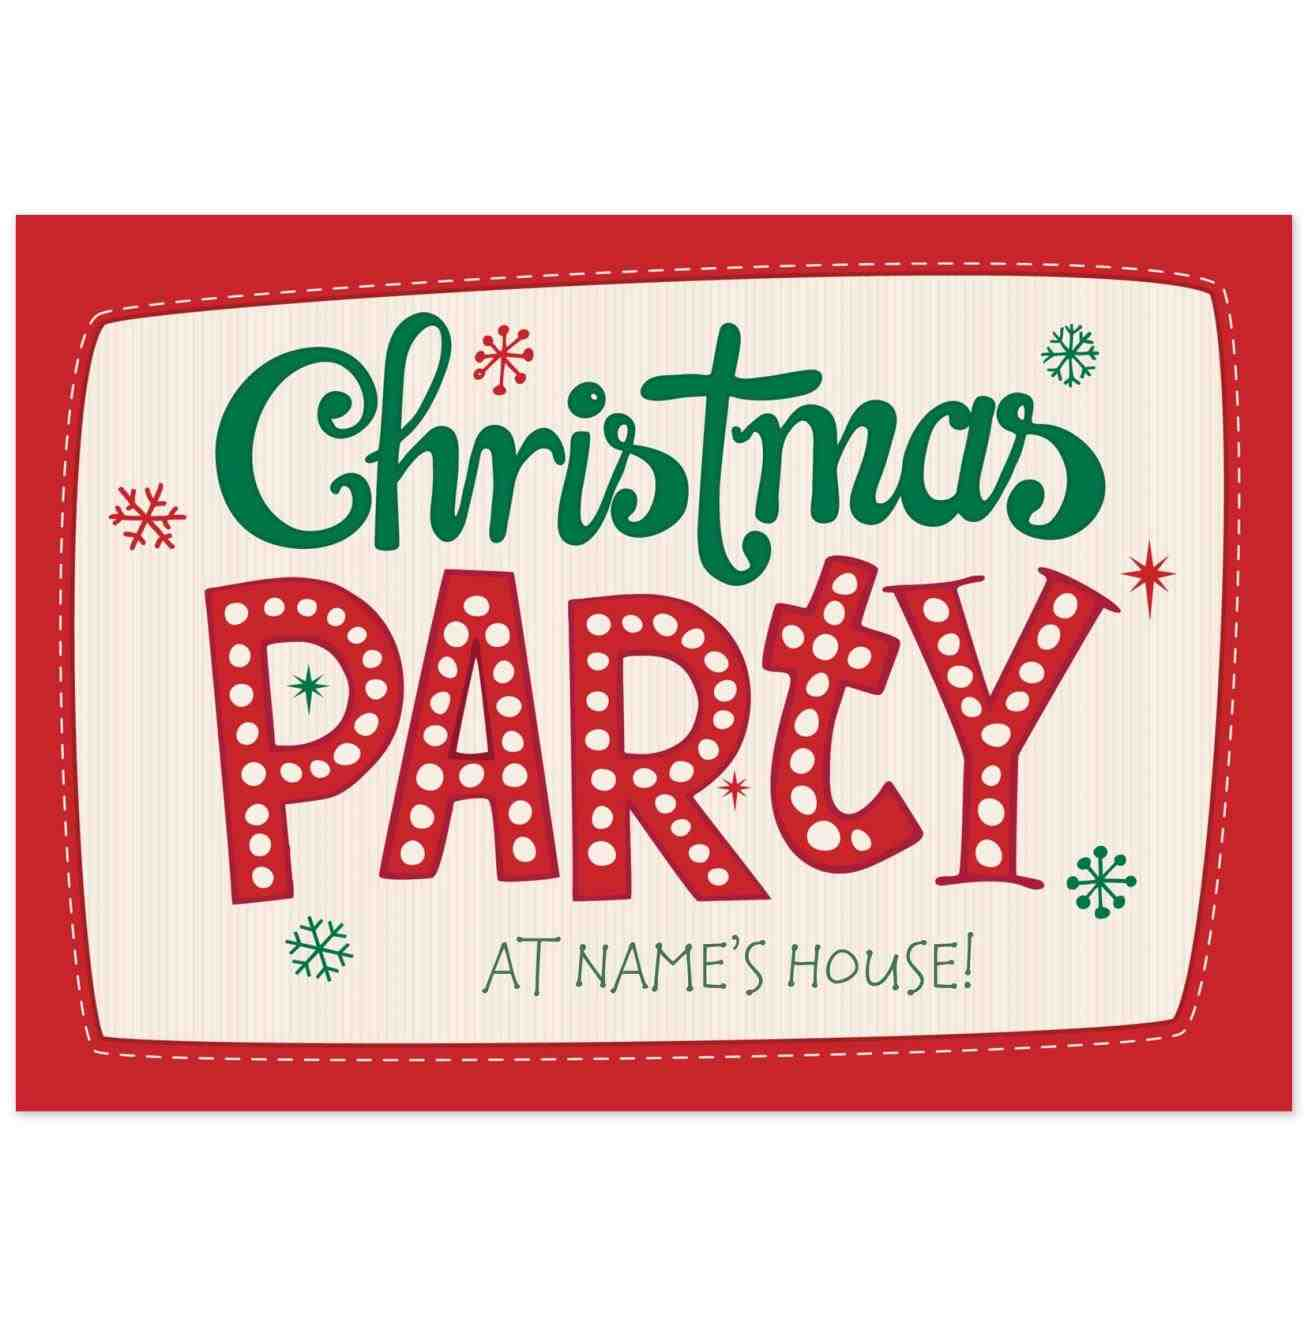 1308x1327 Christmas Party Images Clip Art Cheminee.website